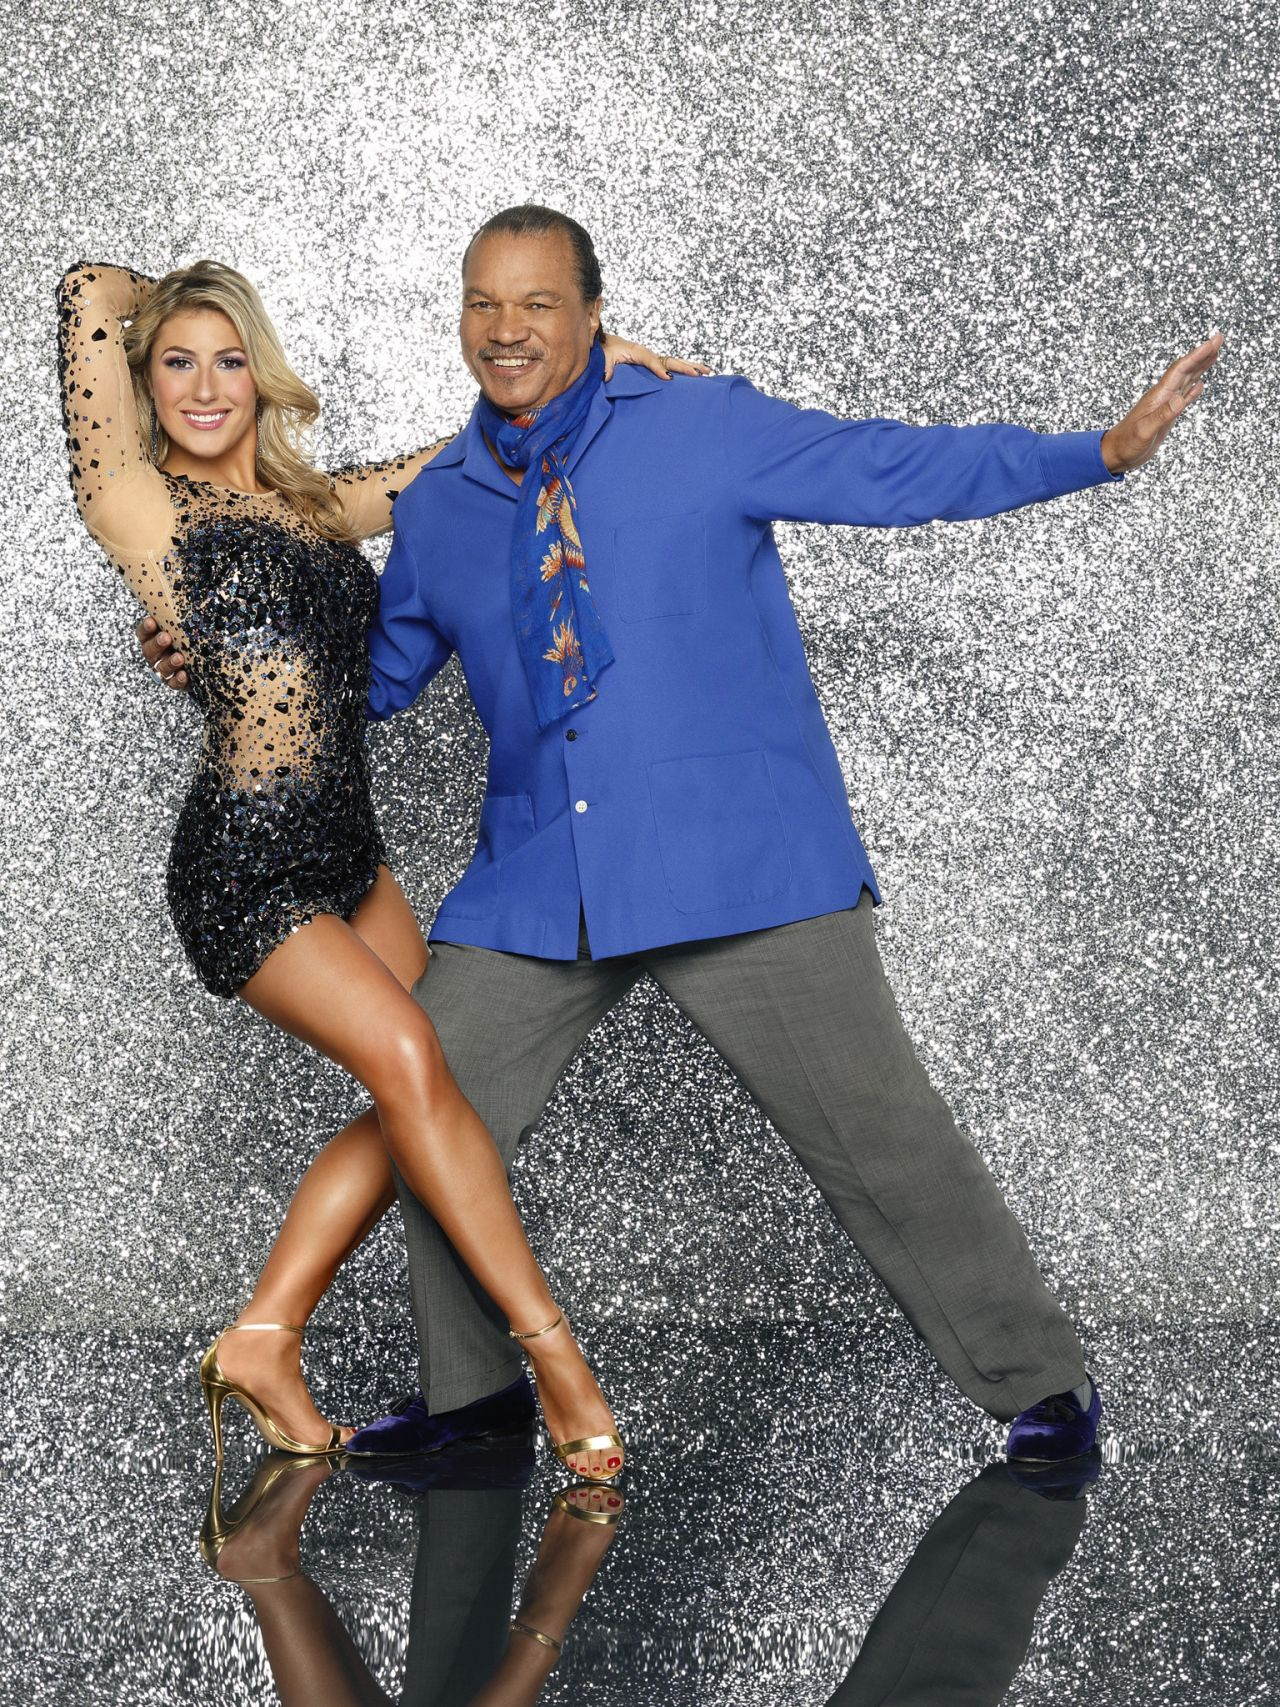 Emma Slater Dancing With The Stars Wiki Fandom Powered